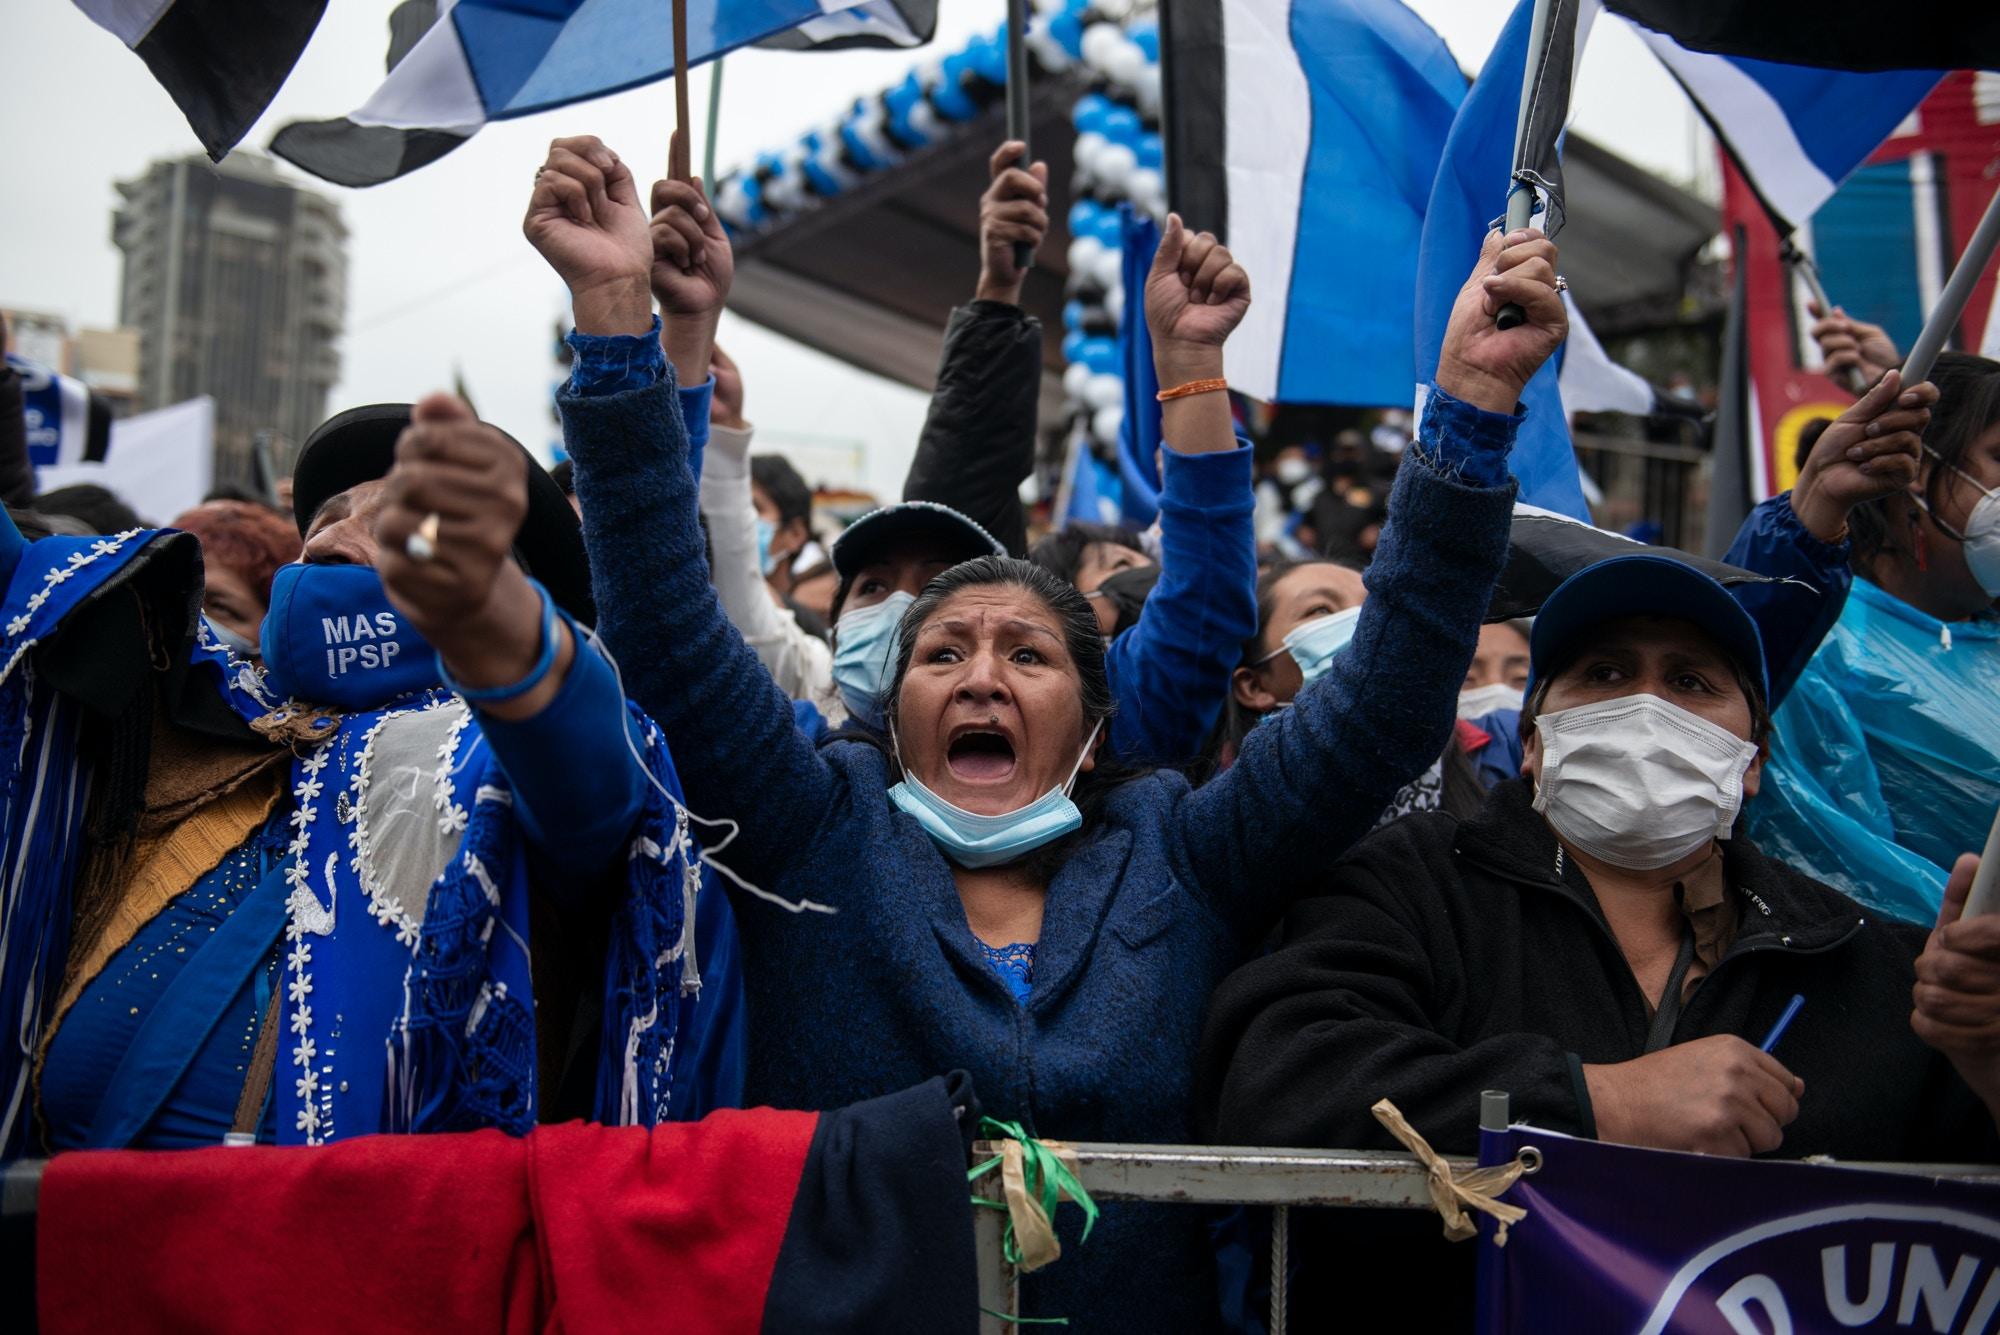 Anniversary of the founding of the ruling party MAS in Bolivia